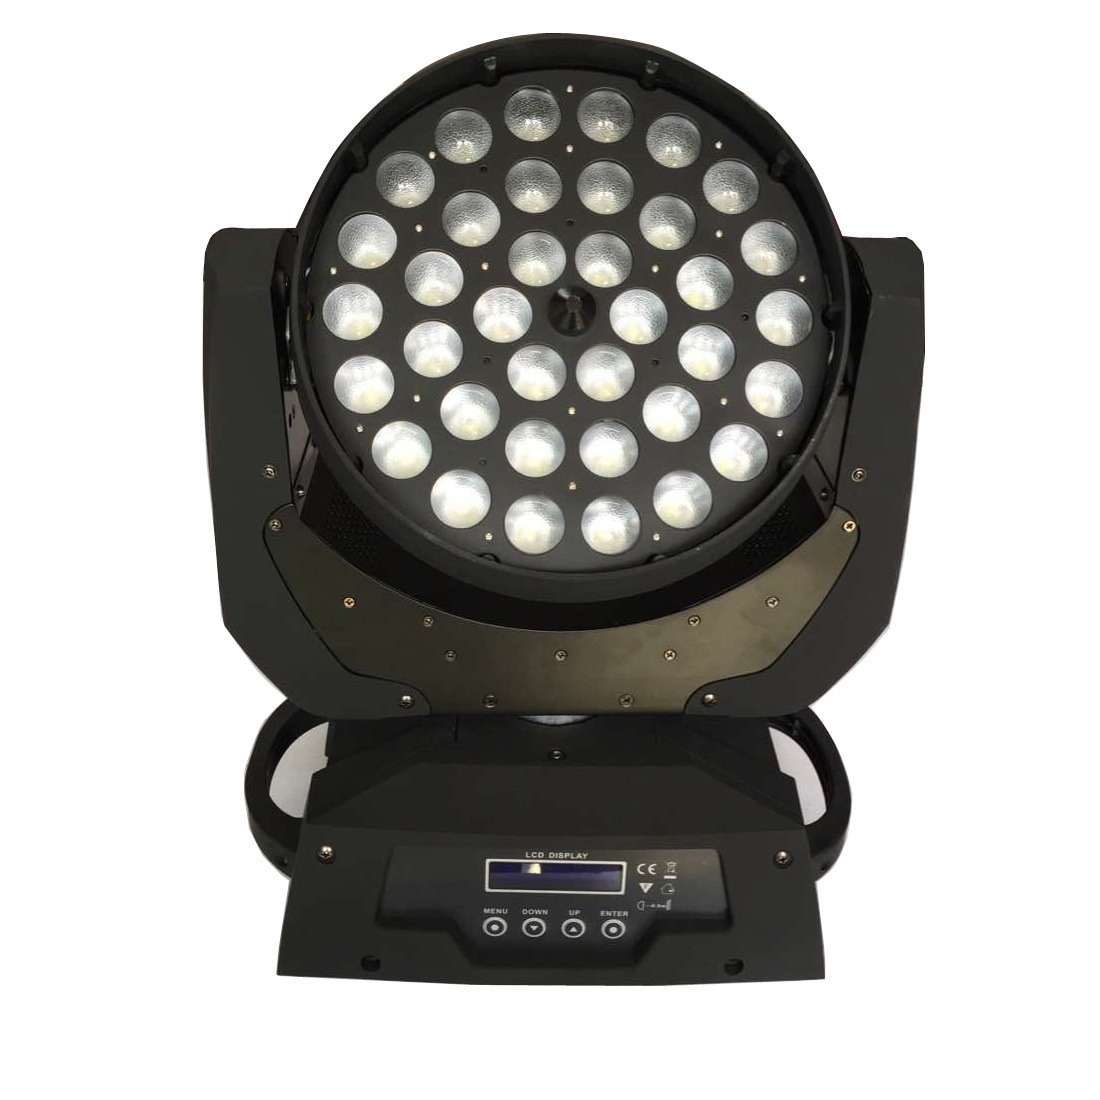 36X10W RGBW LED Moving Head Light with Zoom Wash, for Disco, DJ, KTV, Event Club, Stage Lighting